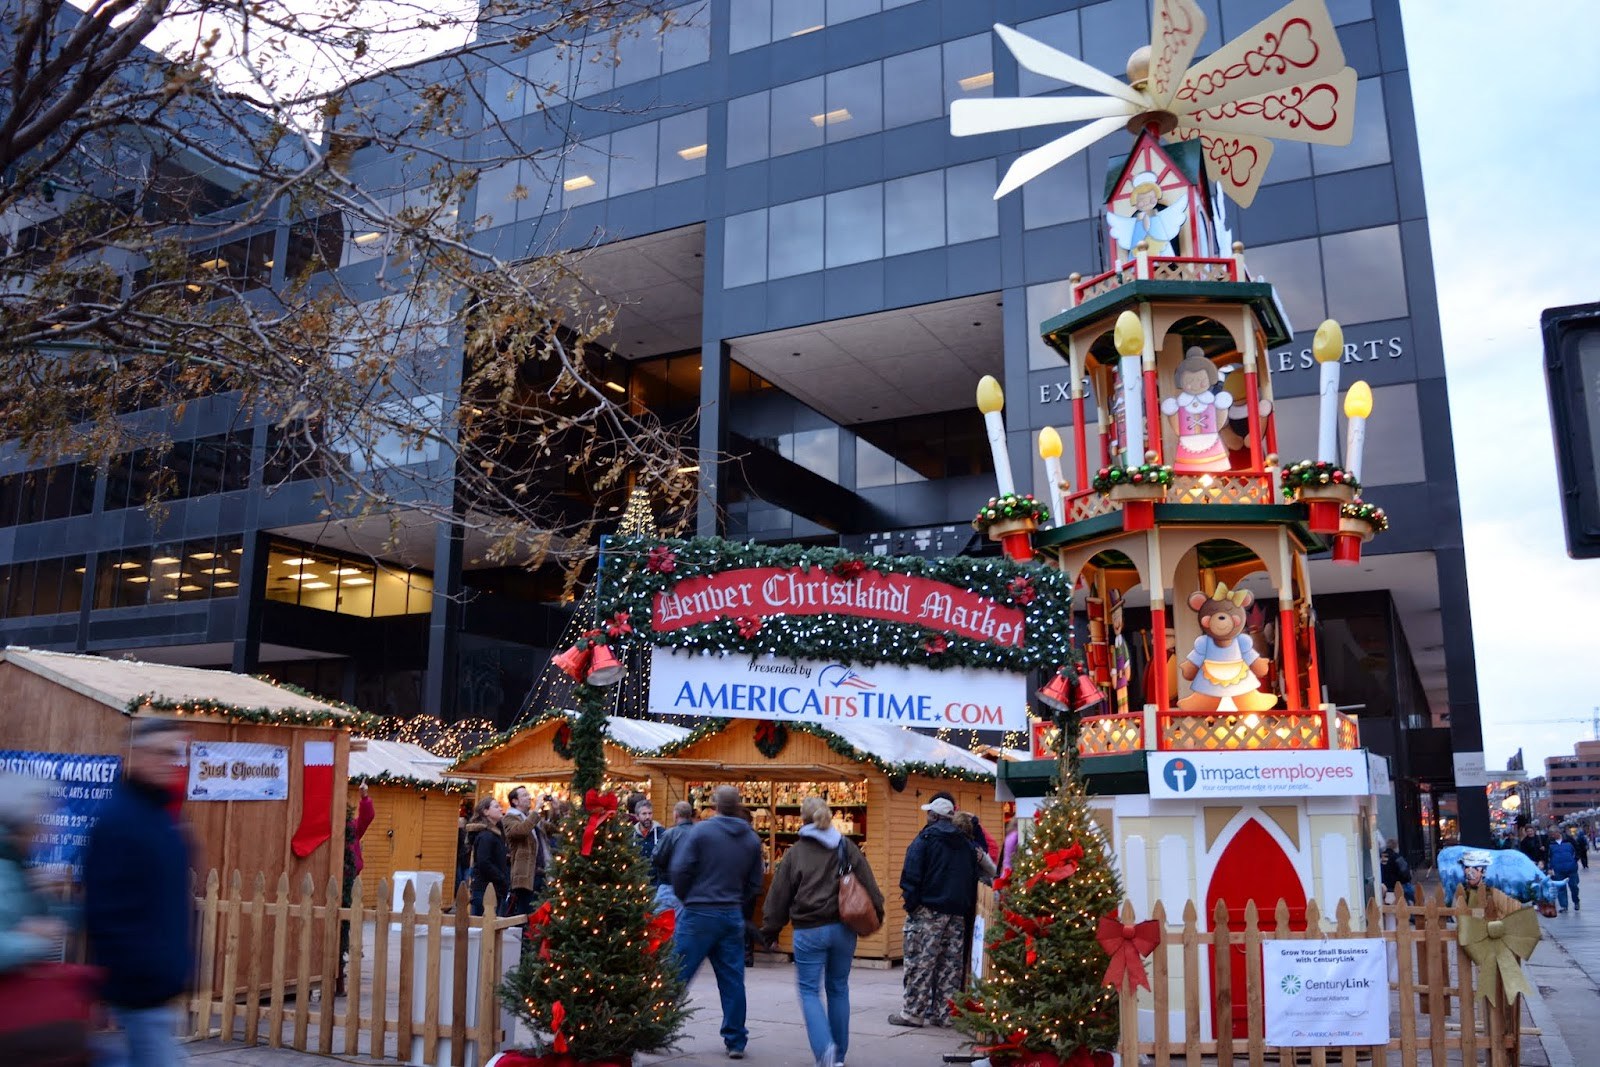 Denver Christkindl Market 11 hrs · Bank of America is proud to partner with Christkindl Market as presenting sponsor, and they are grateful for the opportunity to showcase the following non-profit organizations at the Market: Center for Work Education & Employment on 11/27 and Volunteers for Outdoor Colorado on 11//5().